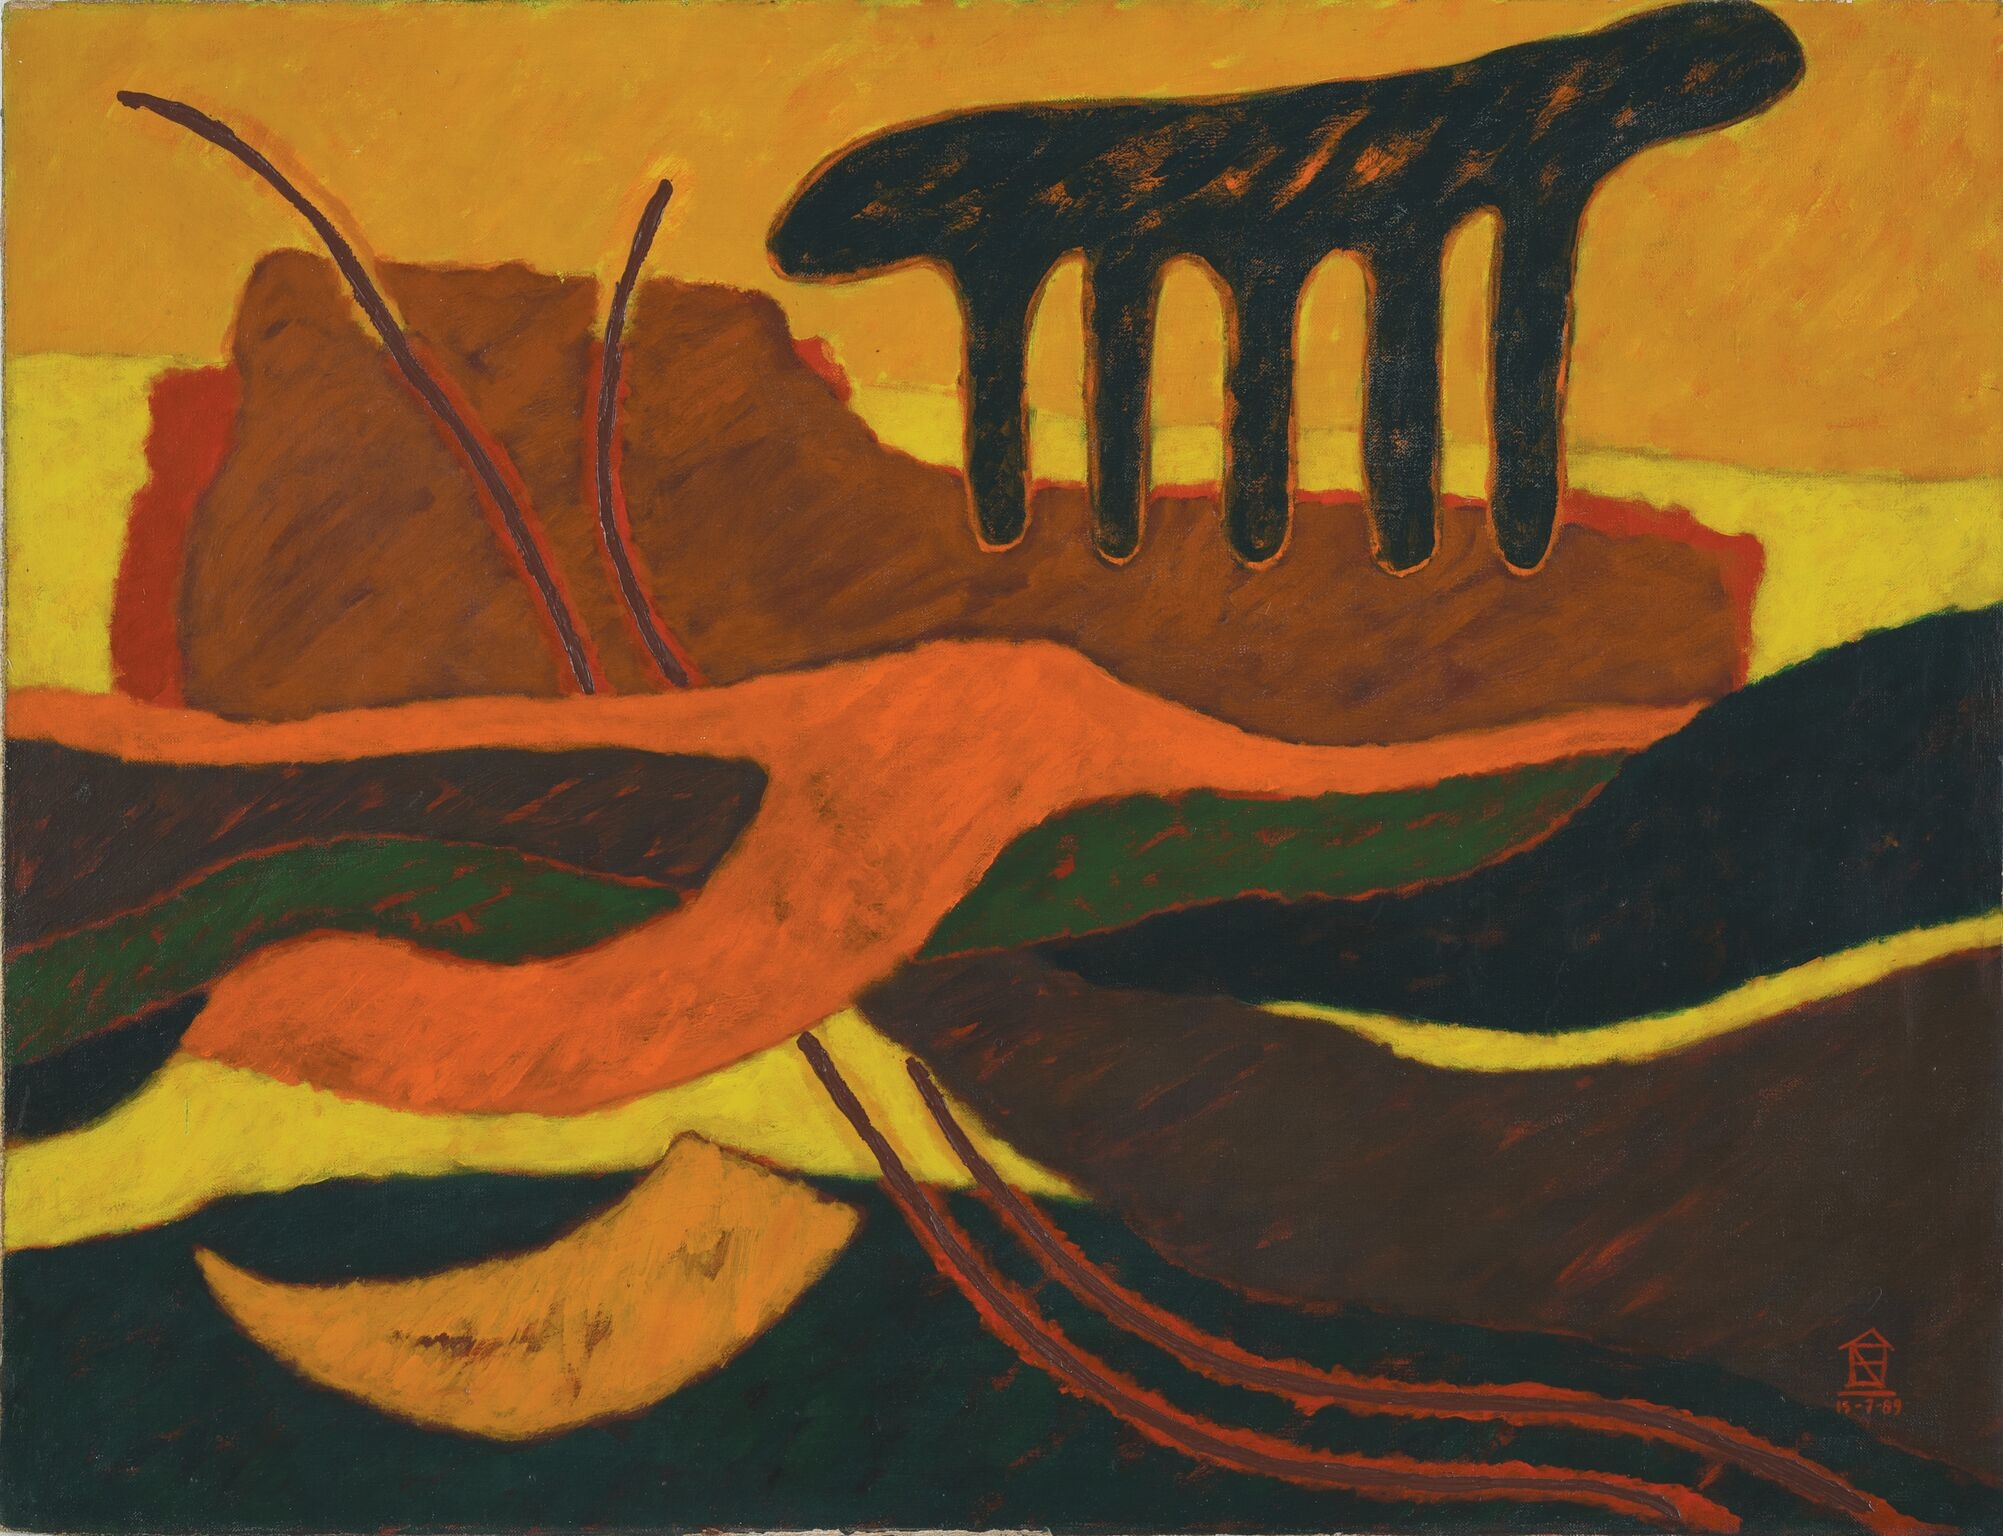 Nashar, Irama, oil on canvas, 70 x 91 cm, 1989